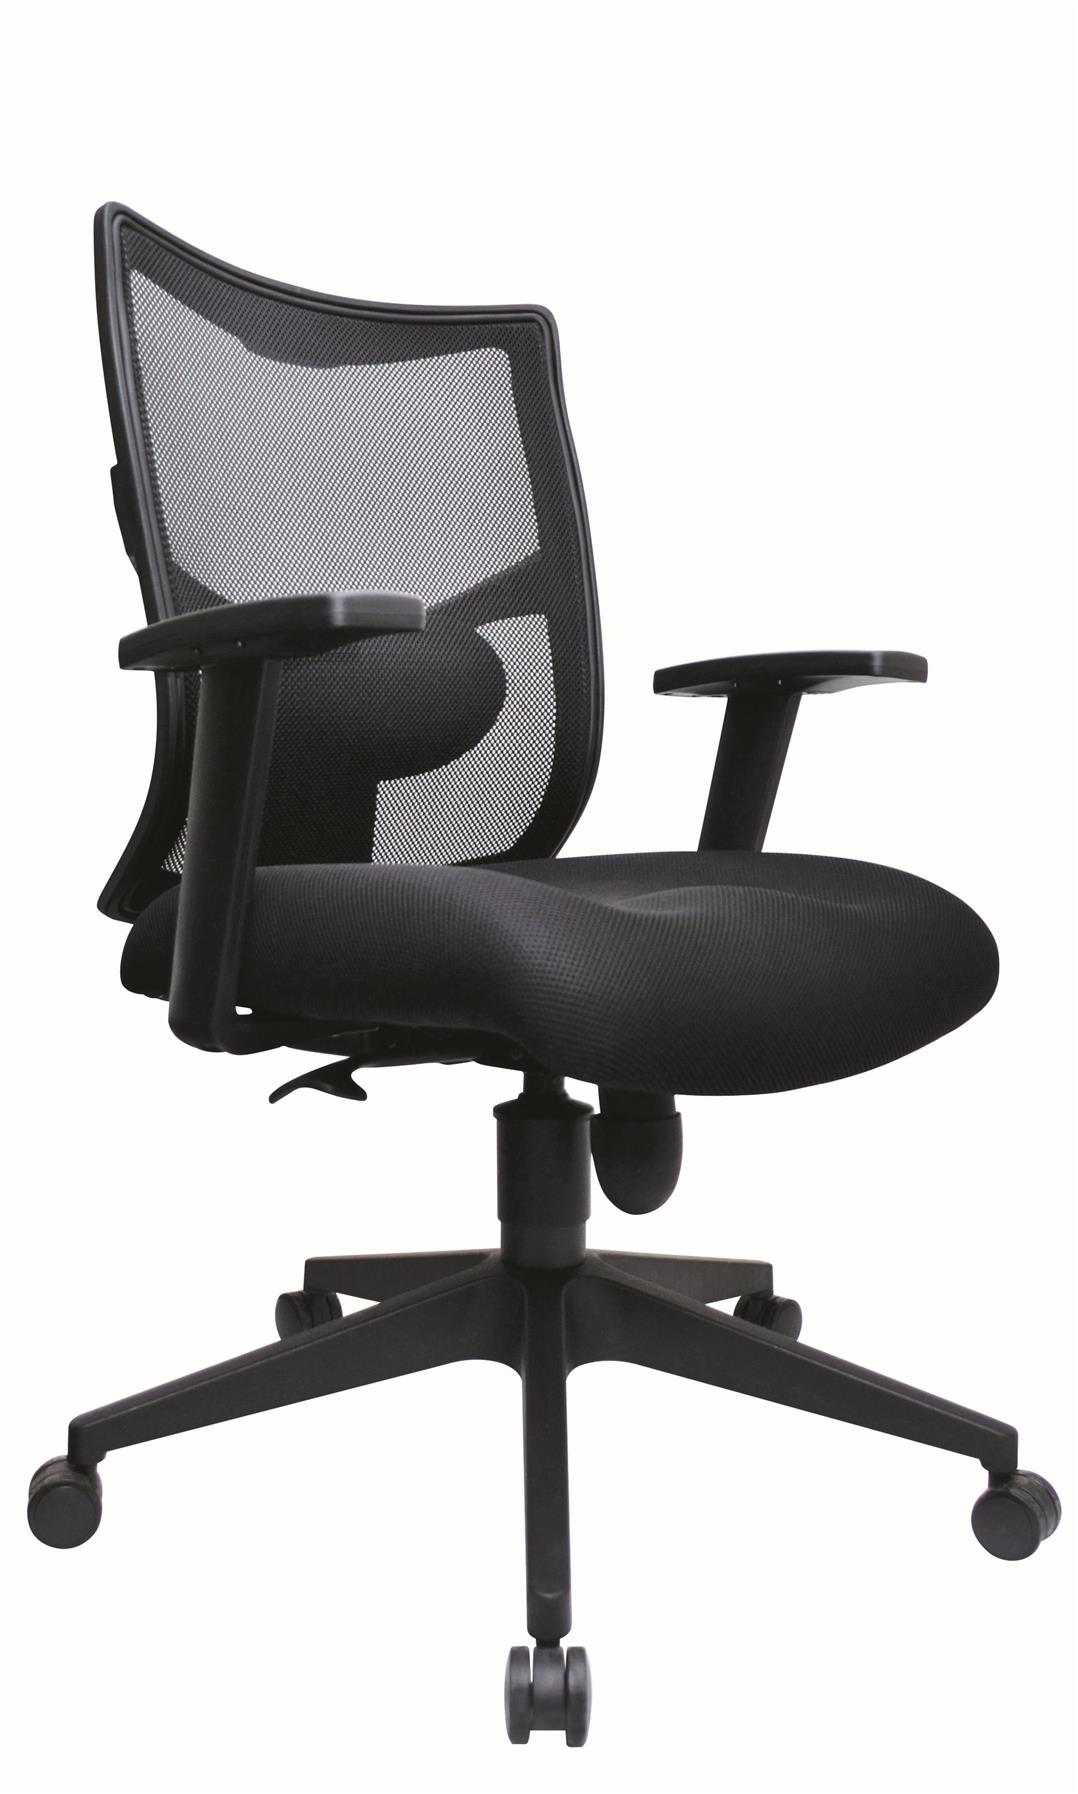 OFFICE MESH CHAIR | OFFICE NETTING CHAIR MODEL : NT-05